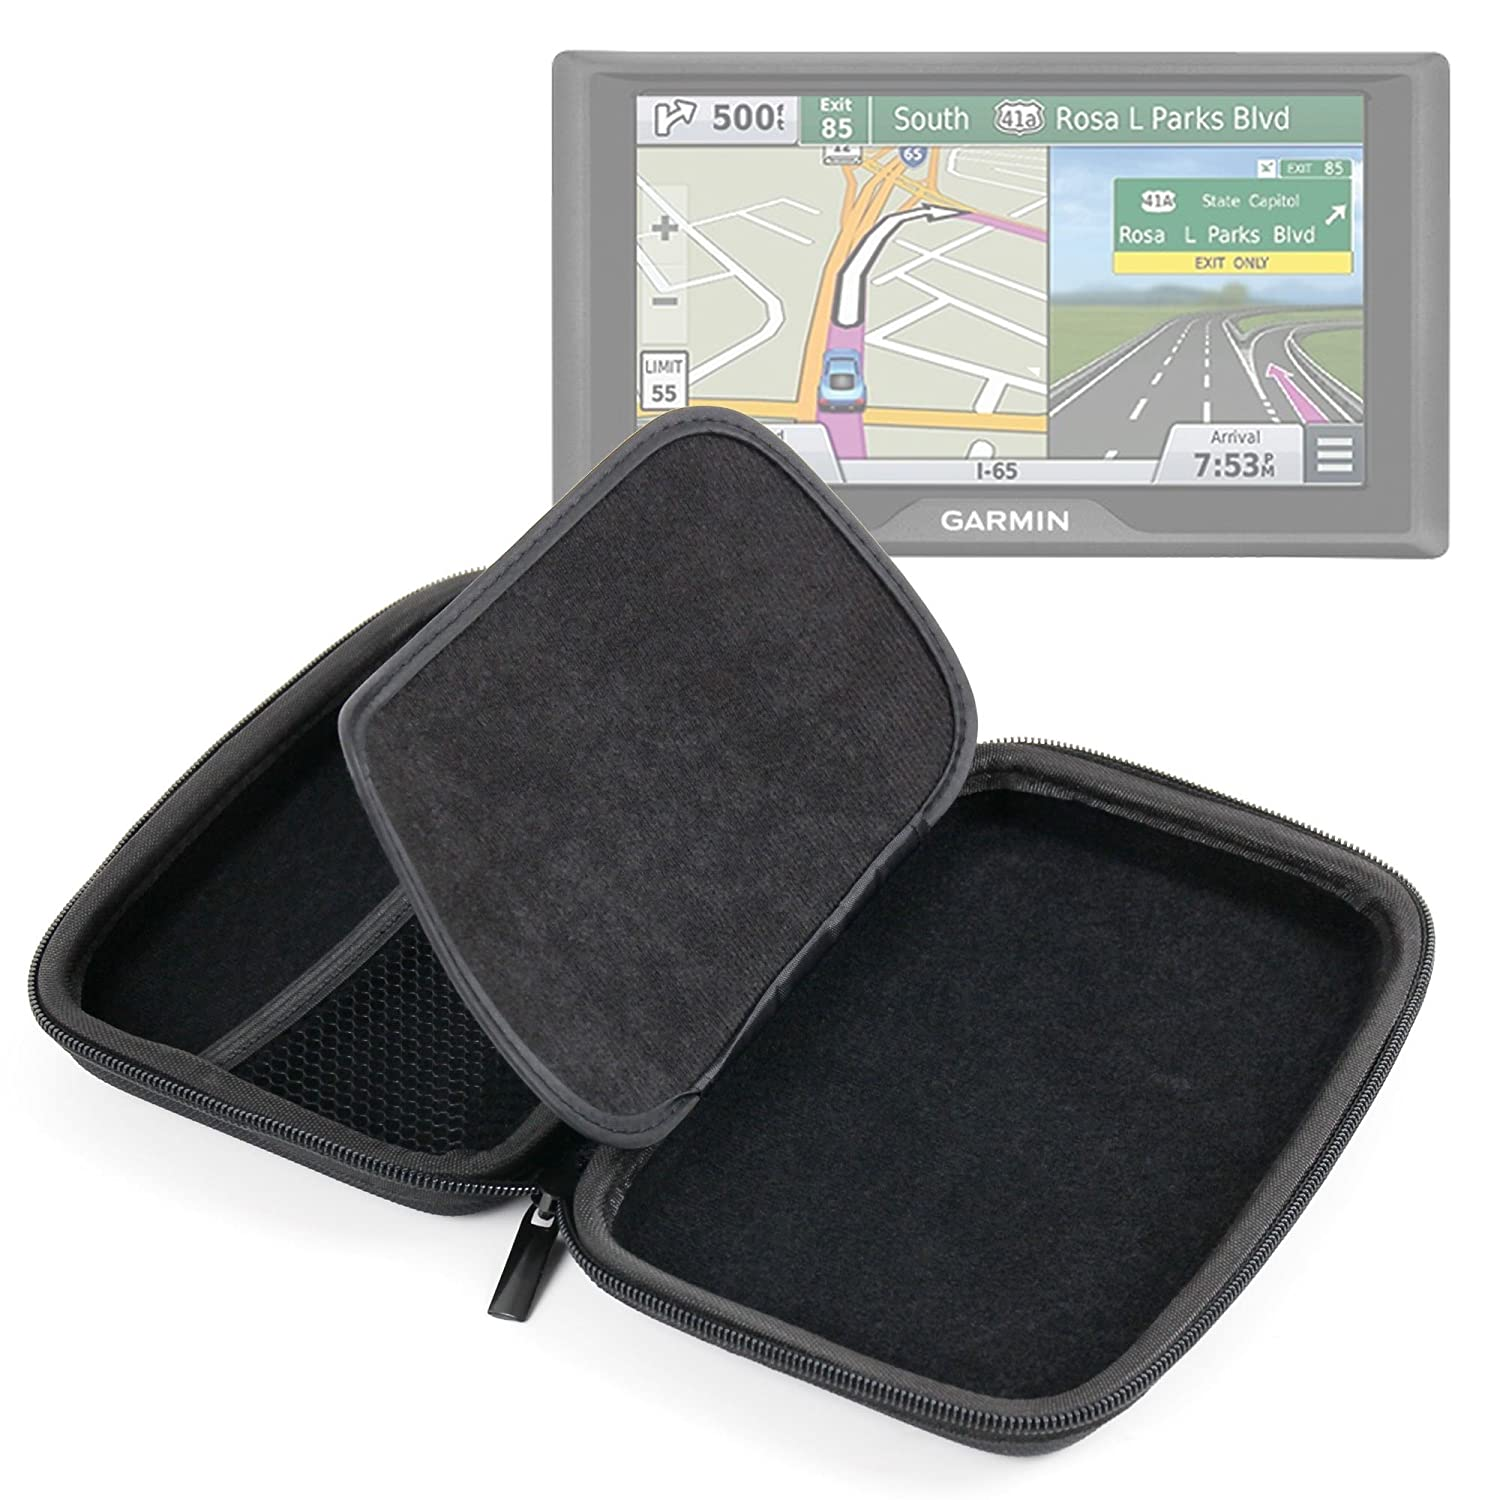 DURAGADGET Premium Quality 7-inch Hard Shell EVA Case in Black for the NEW Garmin Drive 60 LM / 60 LMT Satnavs DURAGAGET 5054646696580